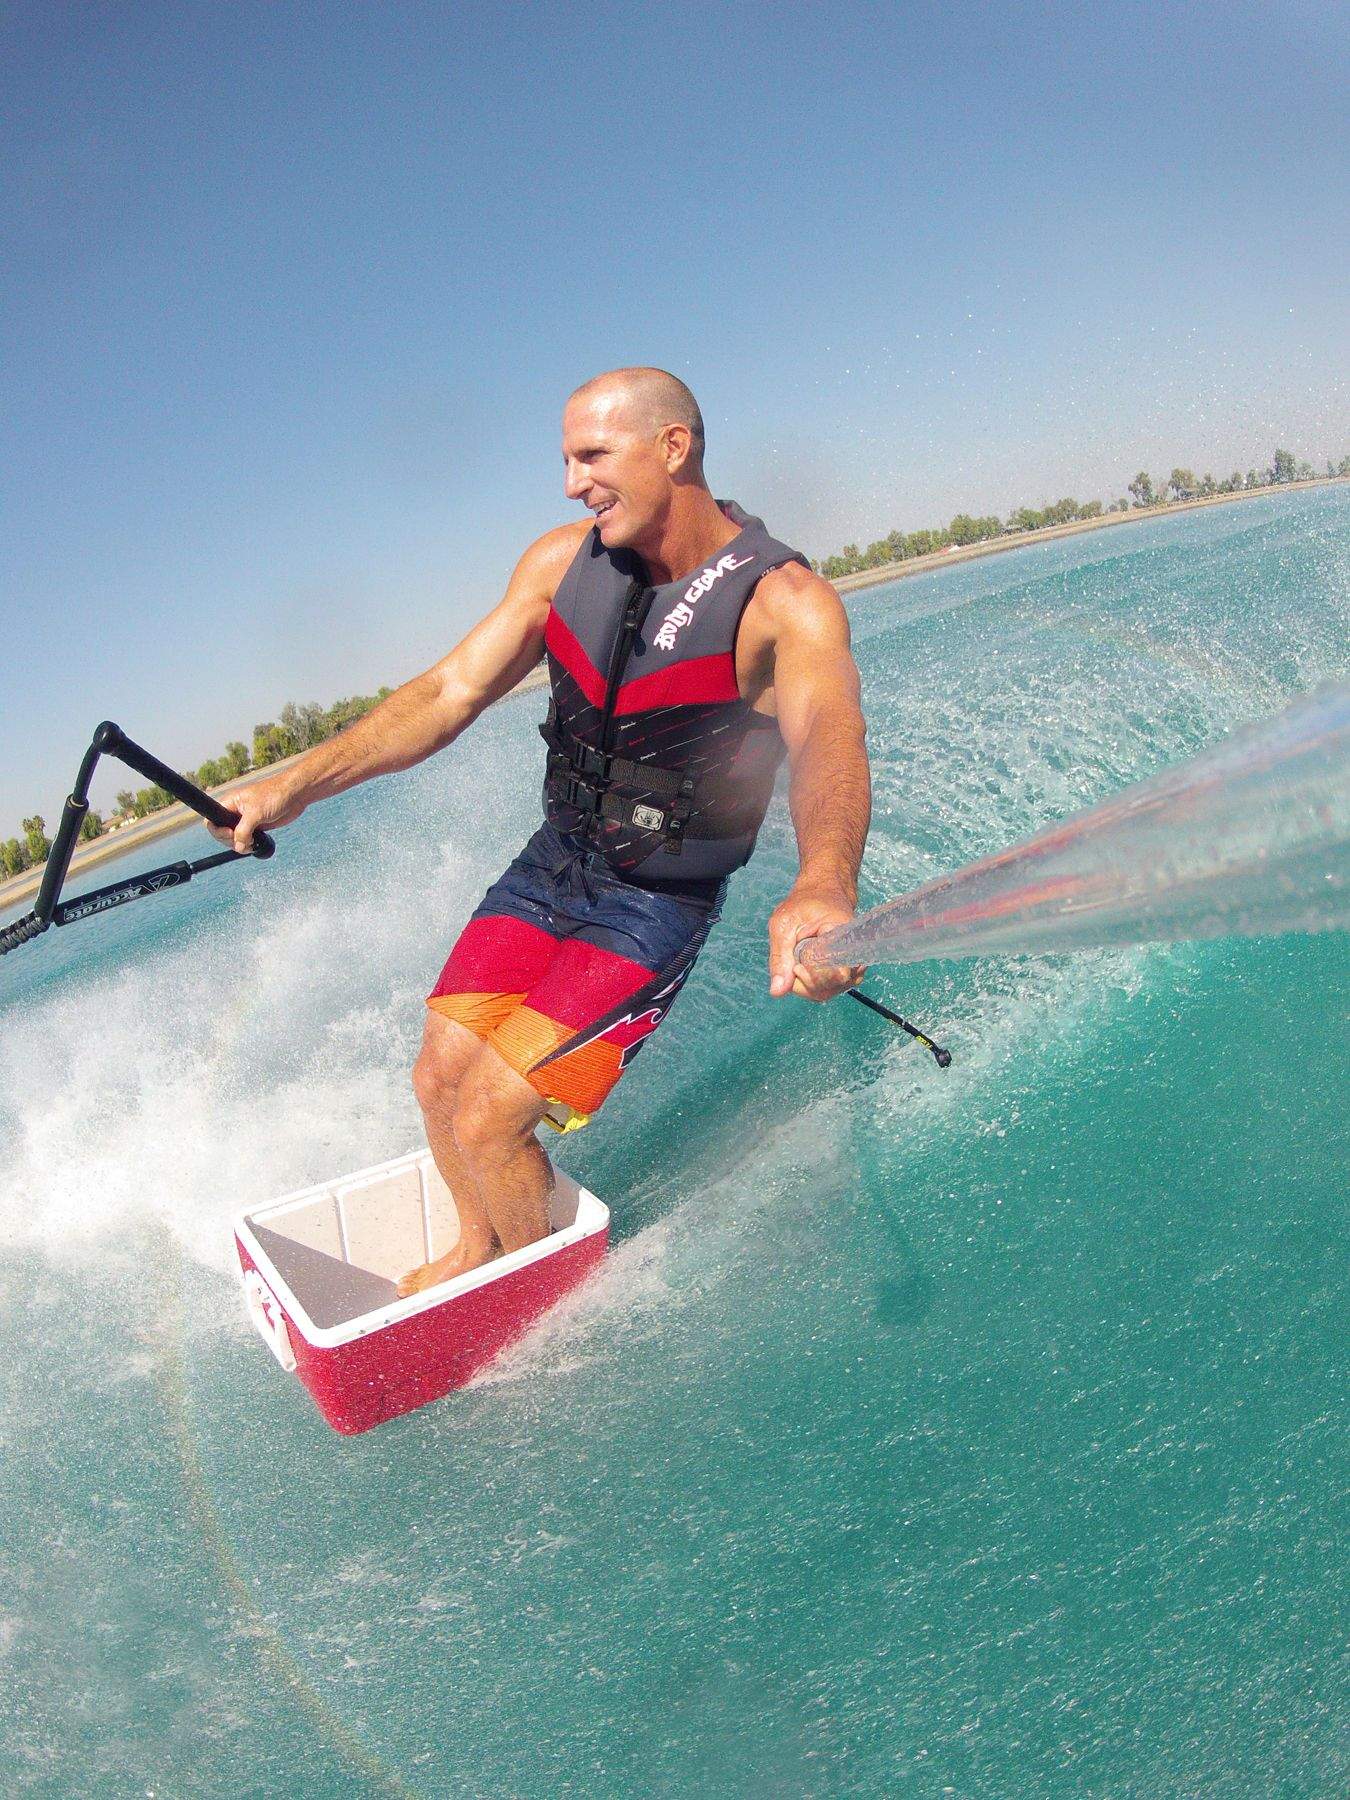 Free Water Ski Photos Gopro Cooler Blue Best Classic Water Skiing Tricks Water Skiing Skiing Images Skiing